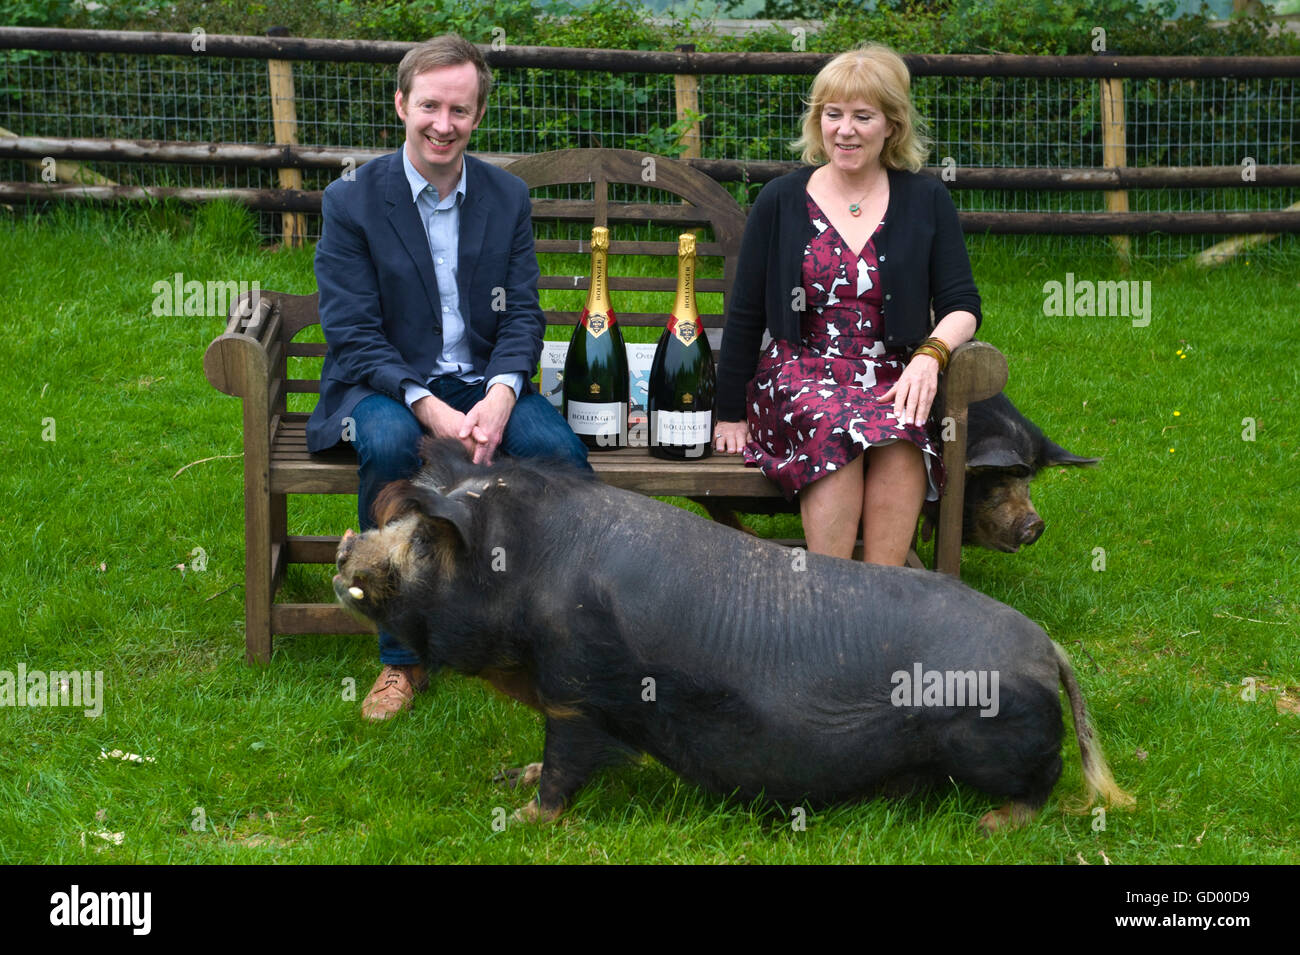 Bollinger Everyman Wodehouse Prize for comic fiction winners Paul Murray and Hannah Rothschild with pigs at  Small - Stock Image